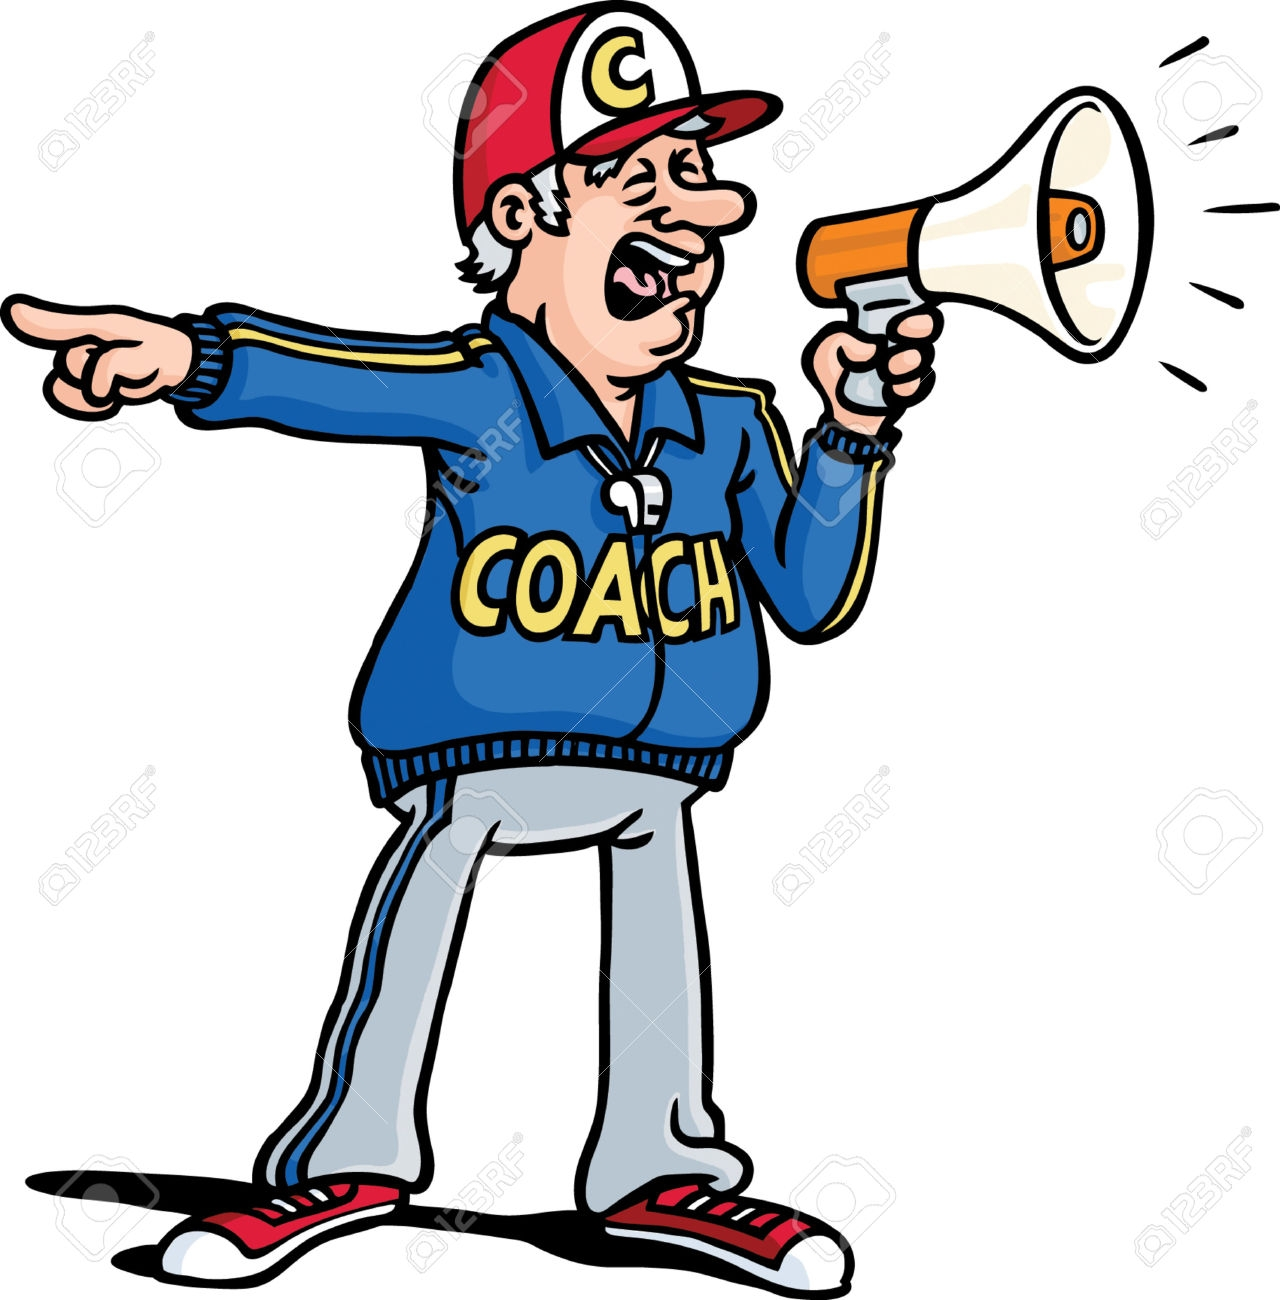 Coach clipart, Coach Transparent FREE for download on.